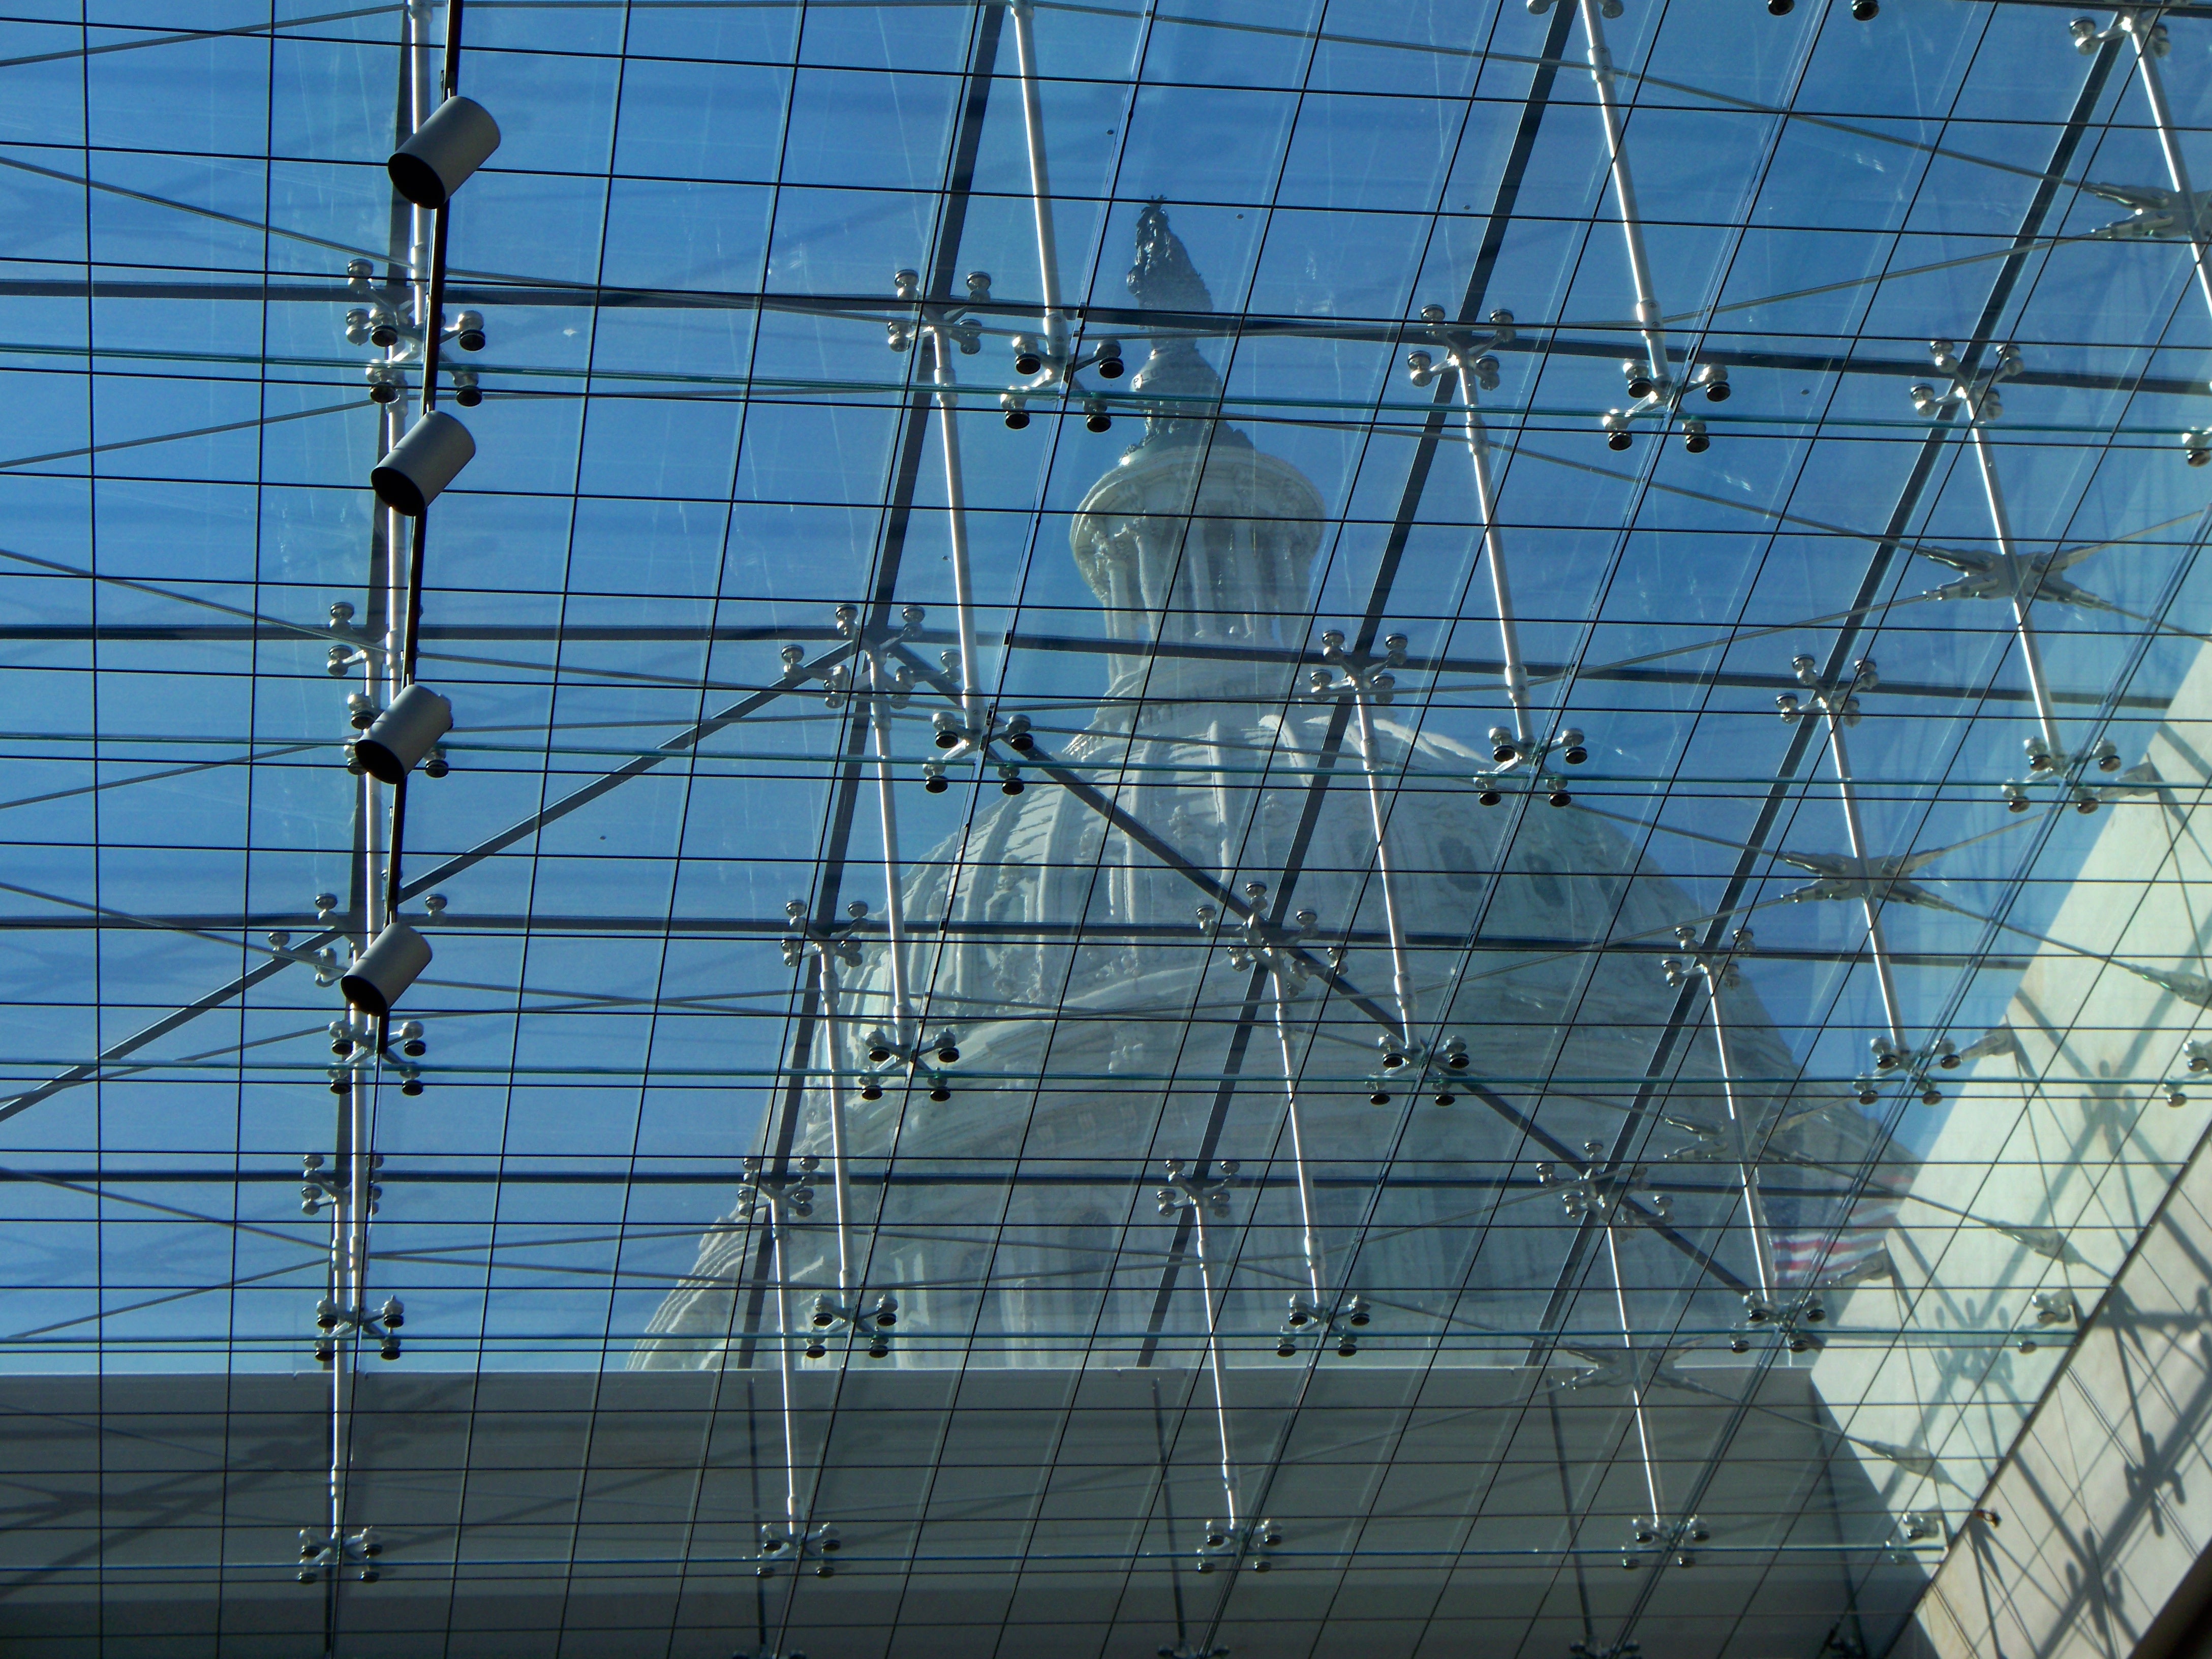 View of dome from visitor center glass ceiling entrance